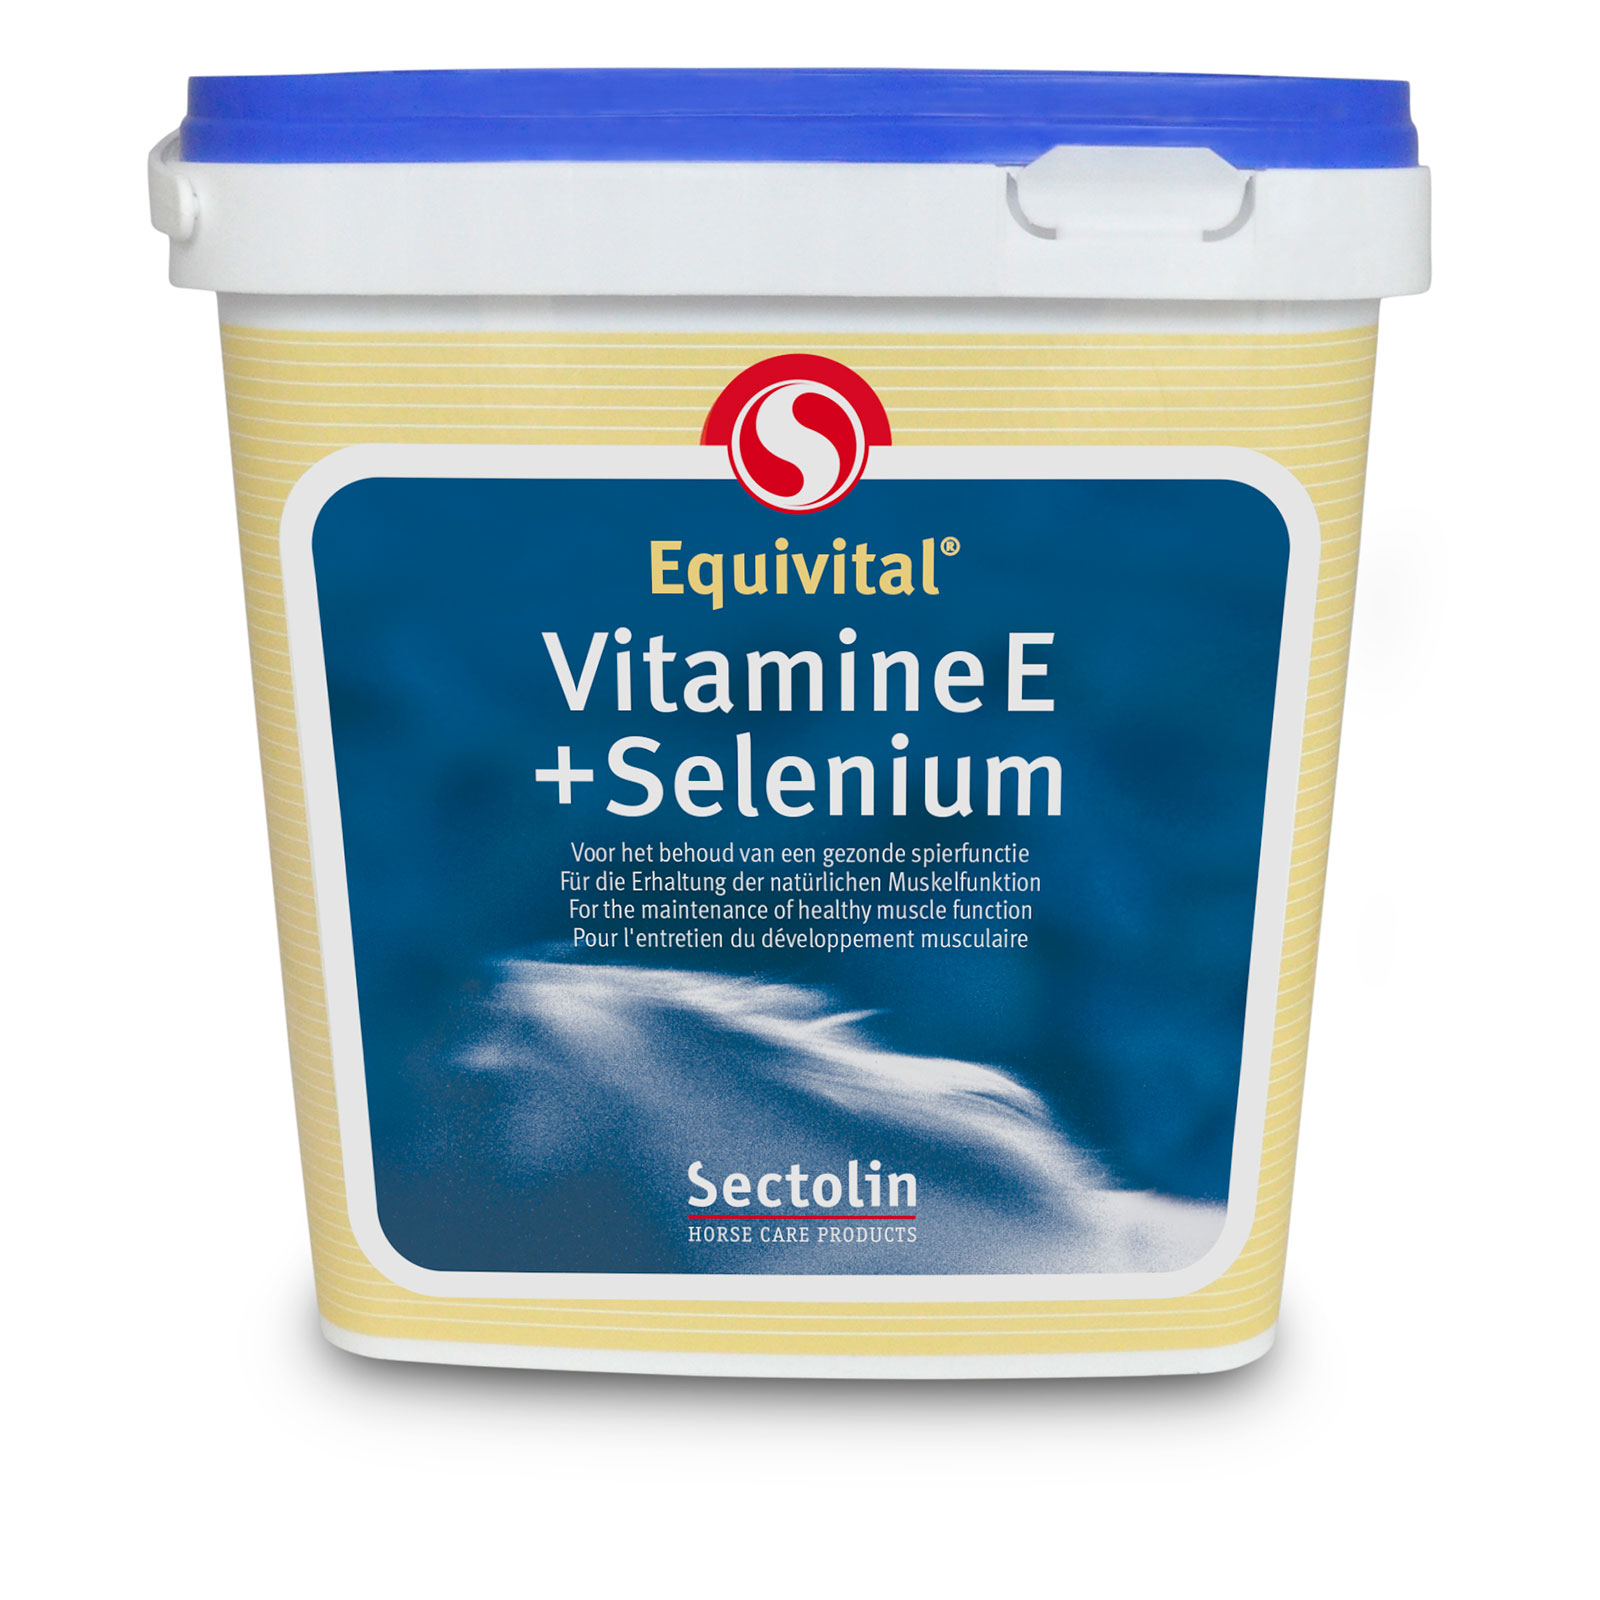 Sectolin Vitamin E + Selen 3 kg